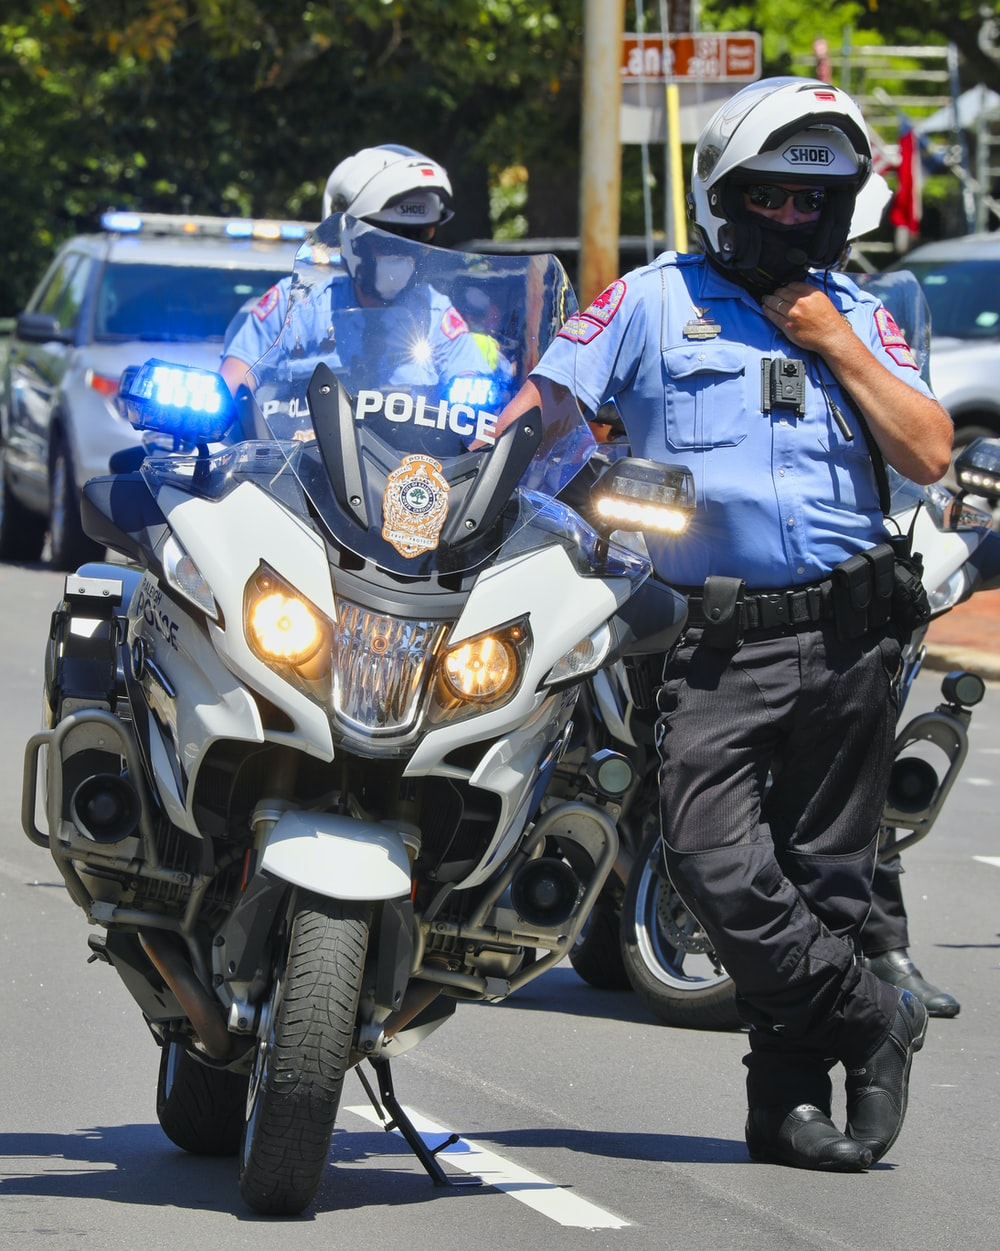 man in blue and white police suit riding on blue and white motorcycle during daytime